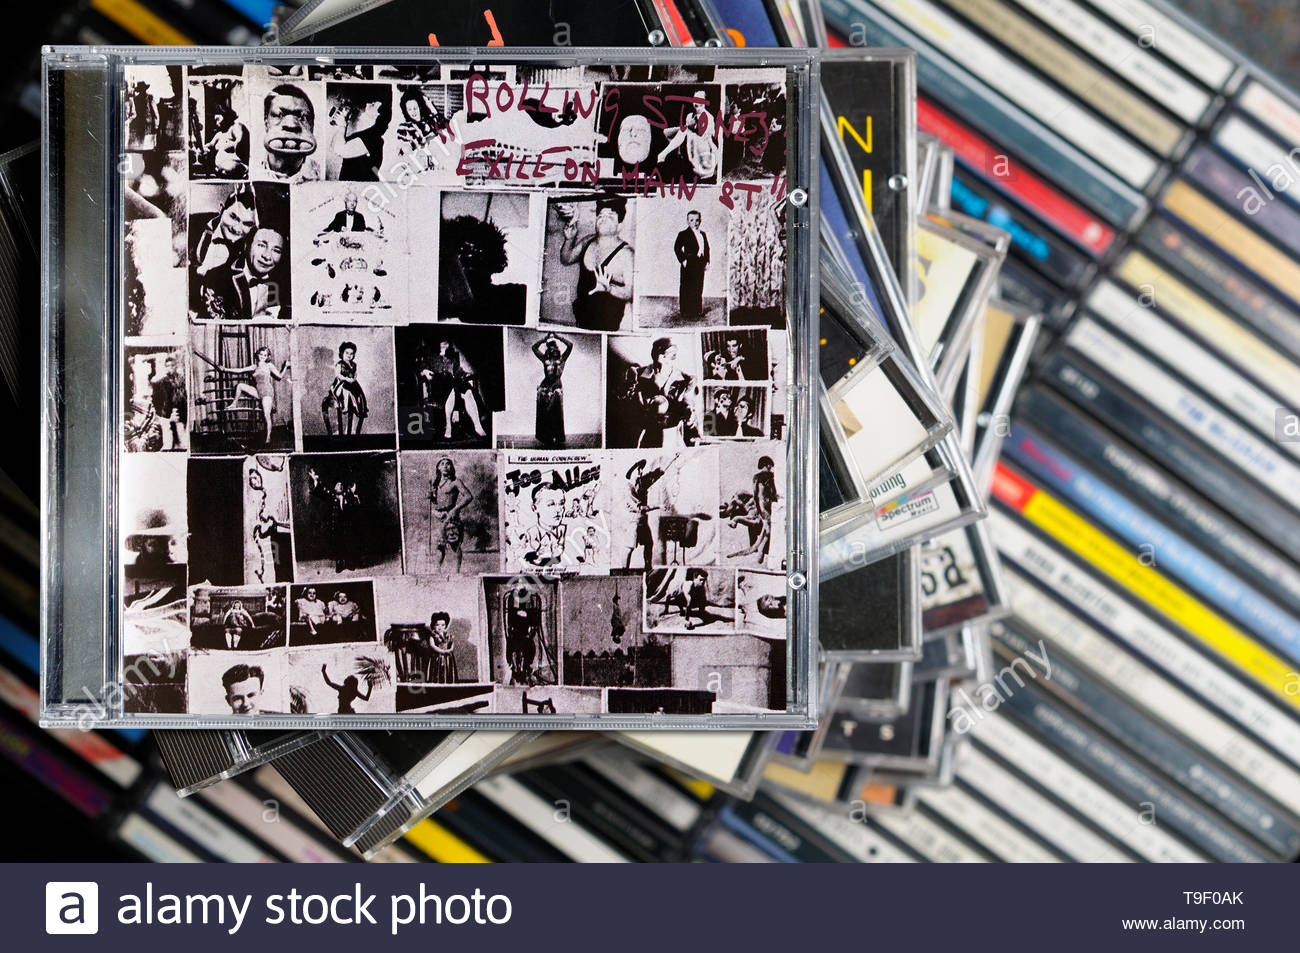 The Rolling Stones Album Cover Stock Photos & The Rolling Stones